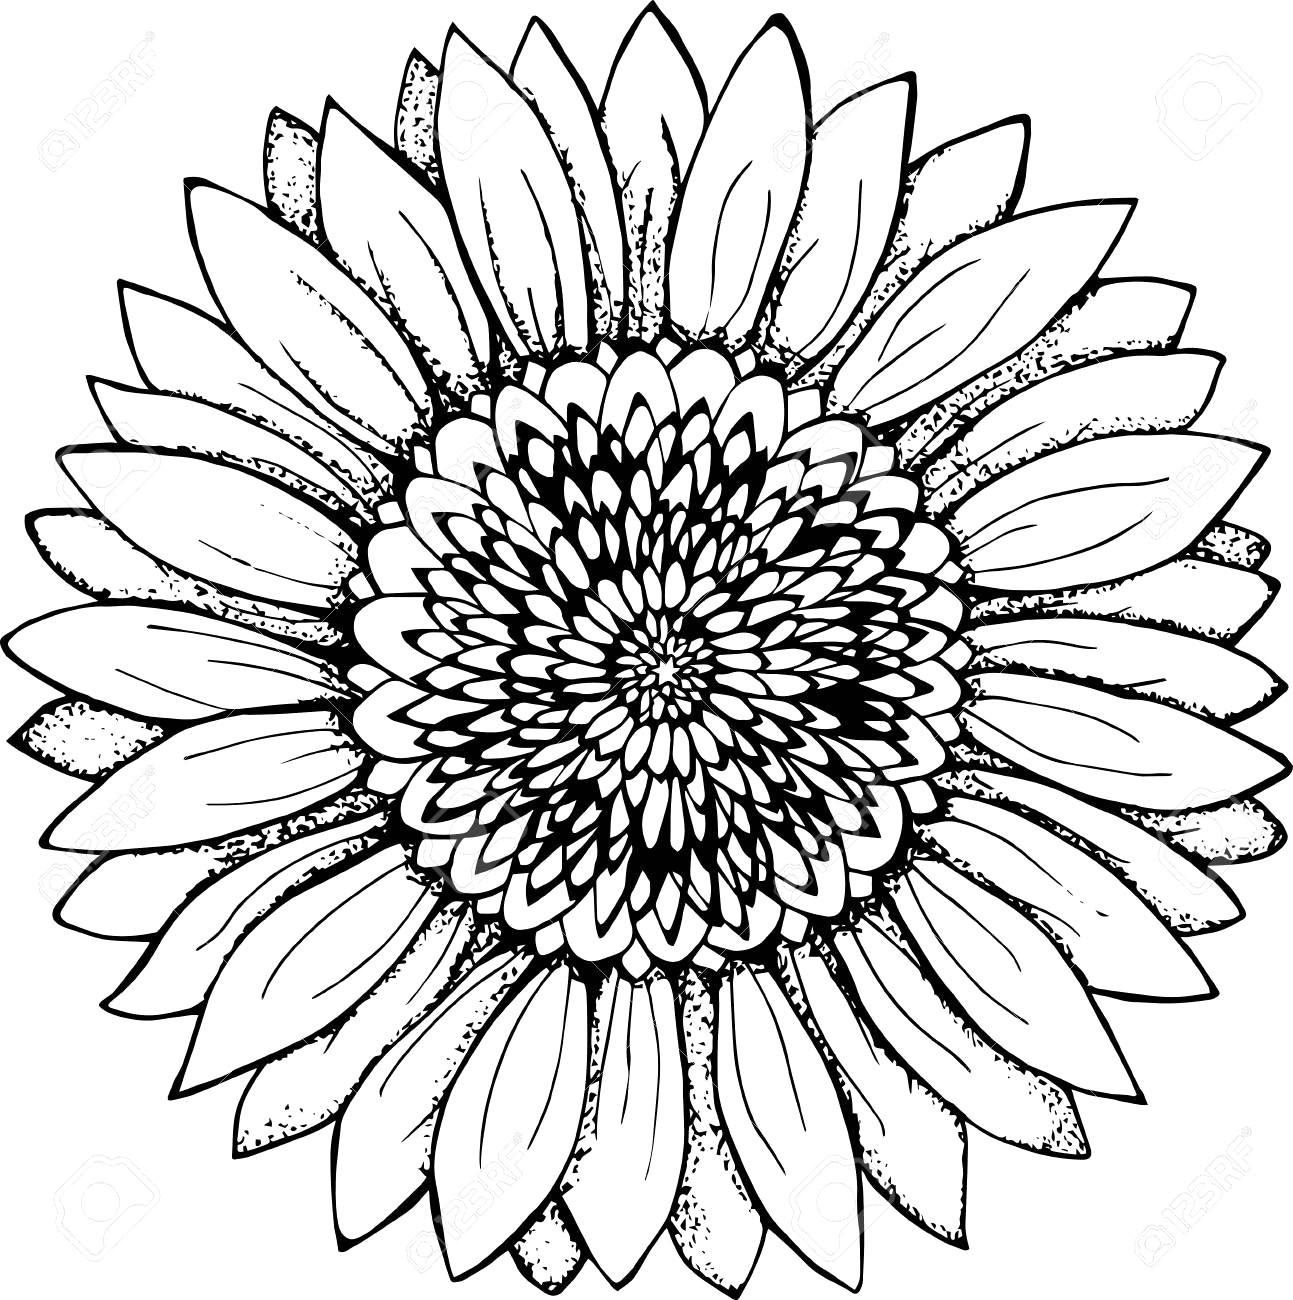 sunflower outline picture sunflower outline drawing at getdrawings free download picture sunflower outline